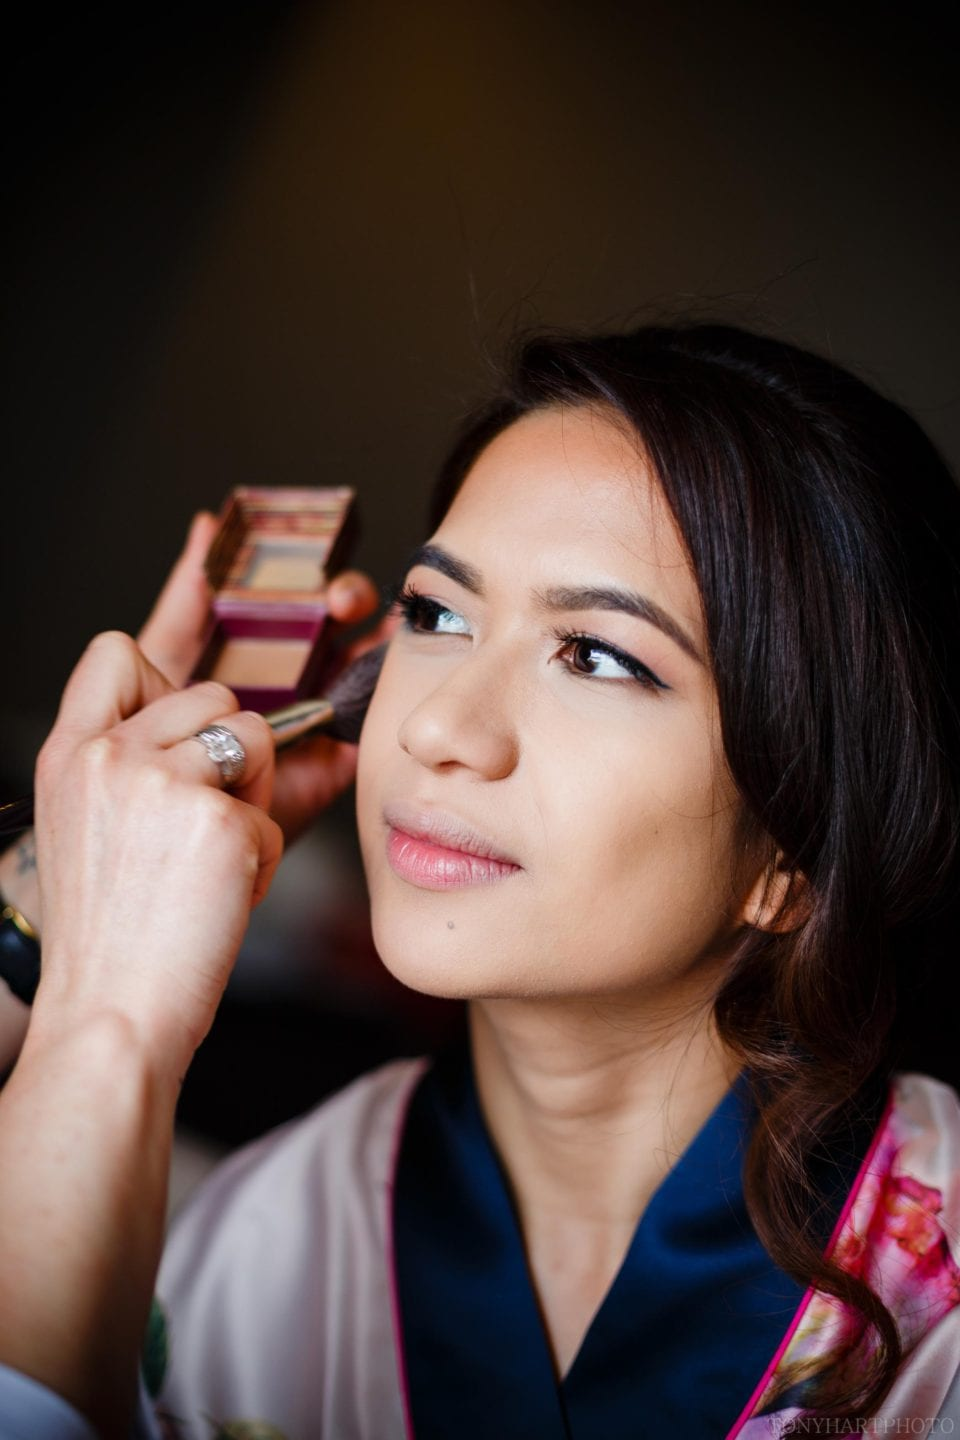 April looking truly radiant while being made up for her wedding at The Bingham Hotel Richmond